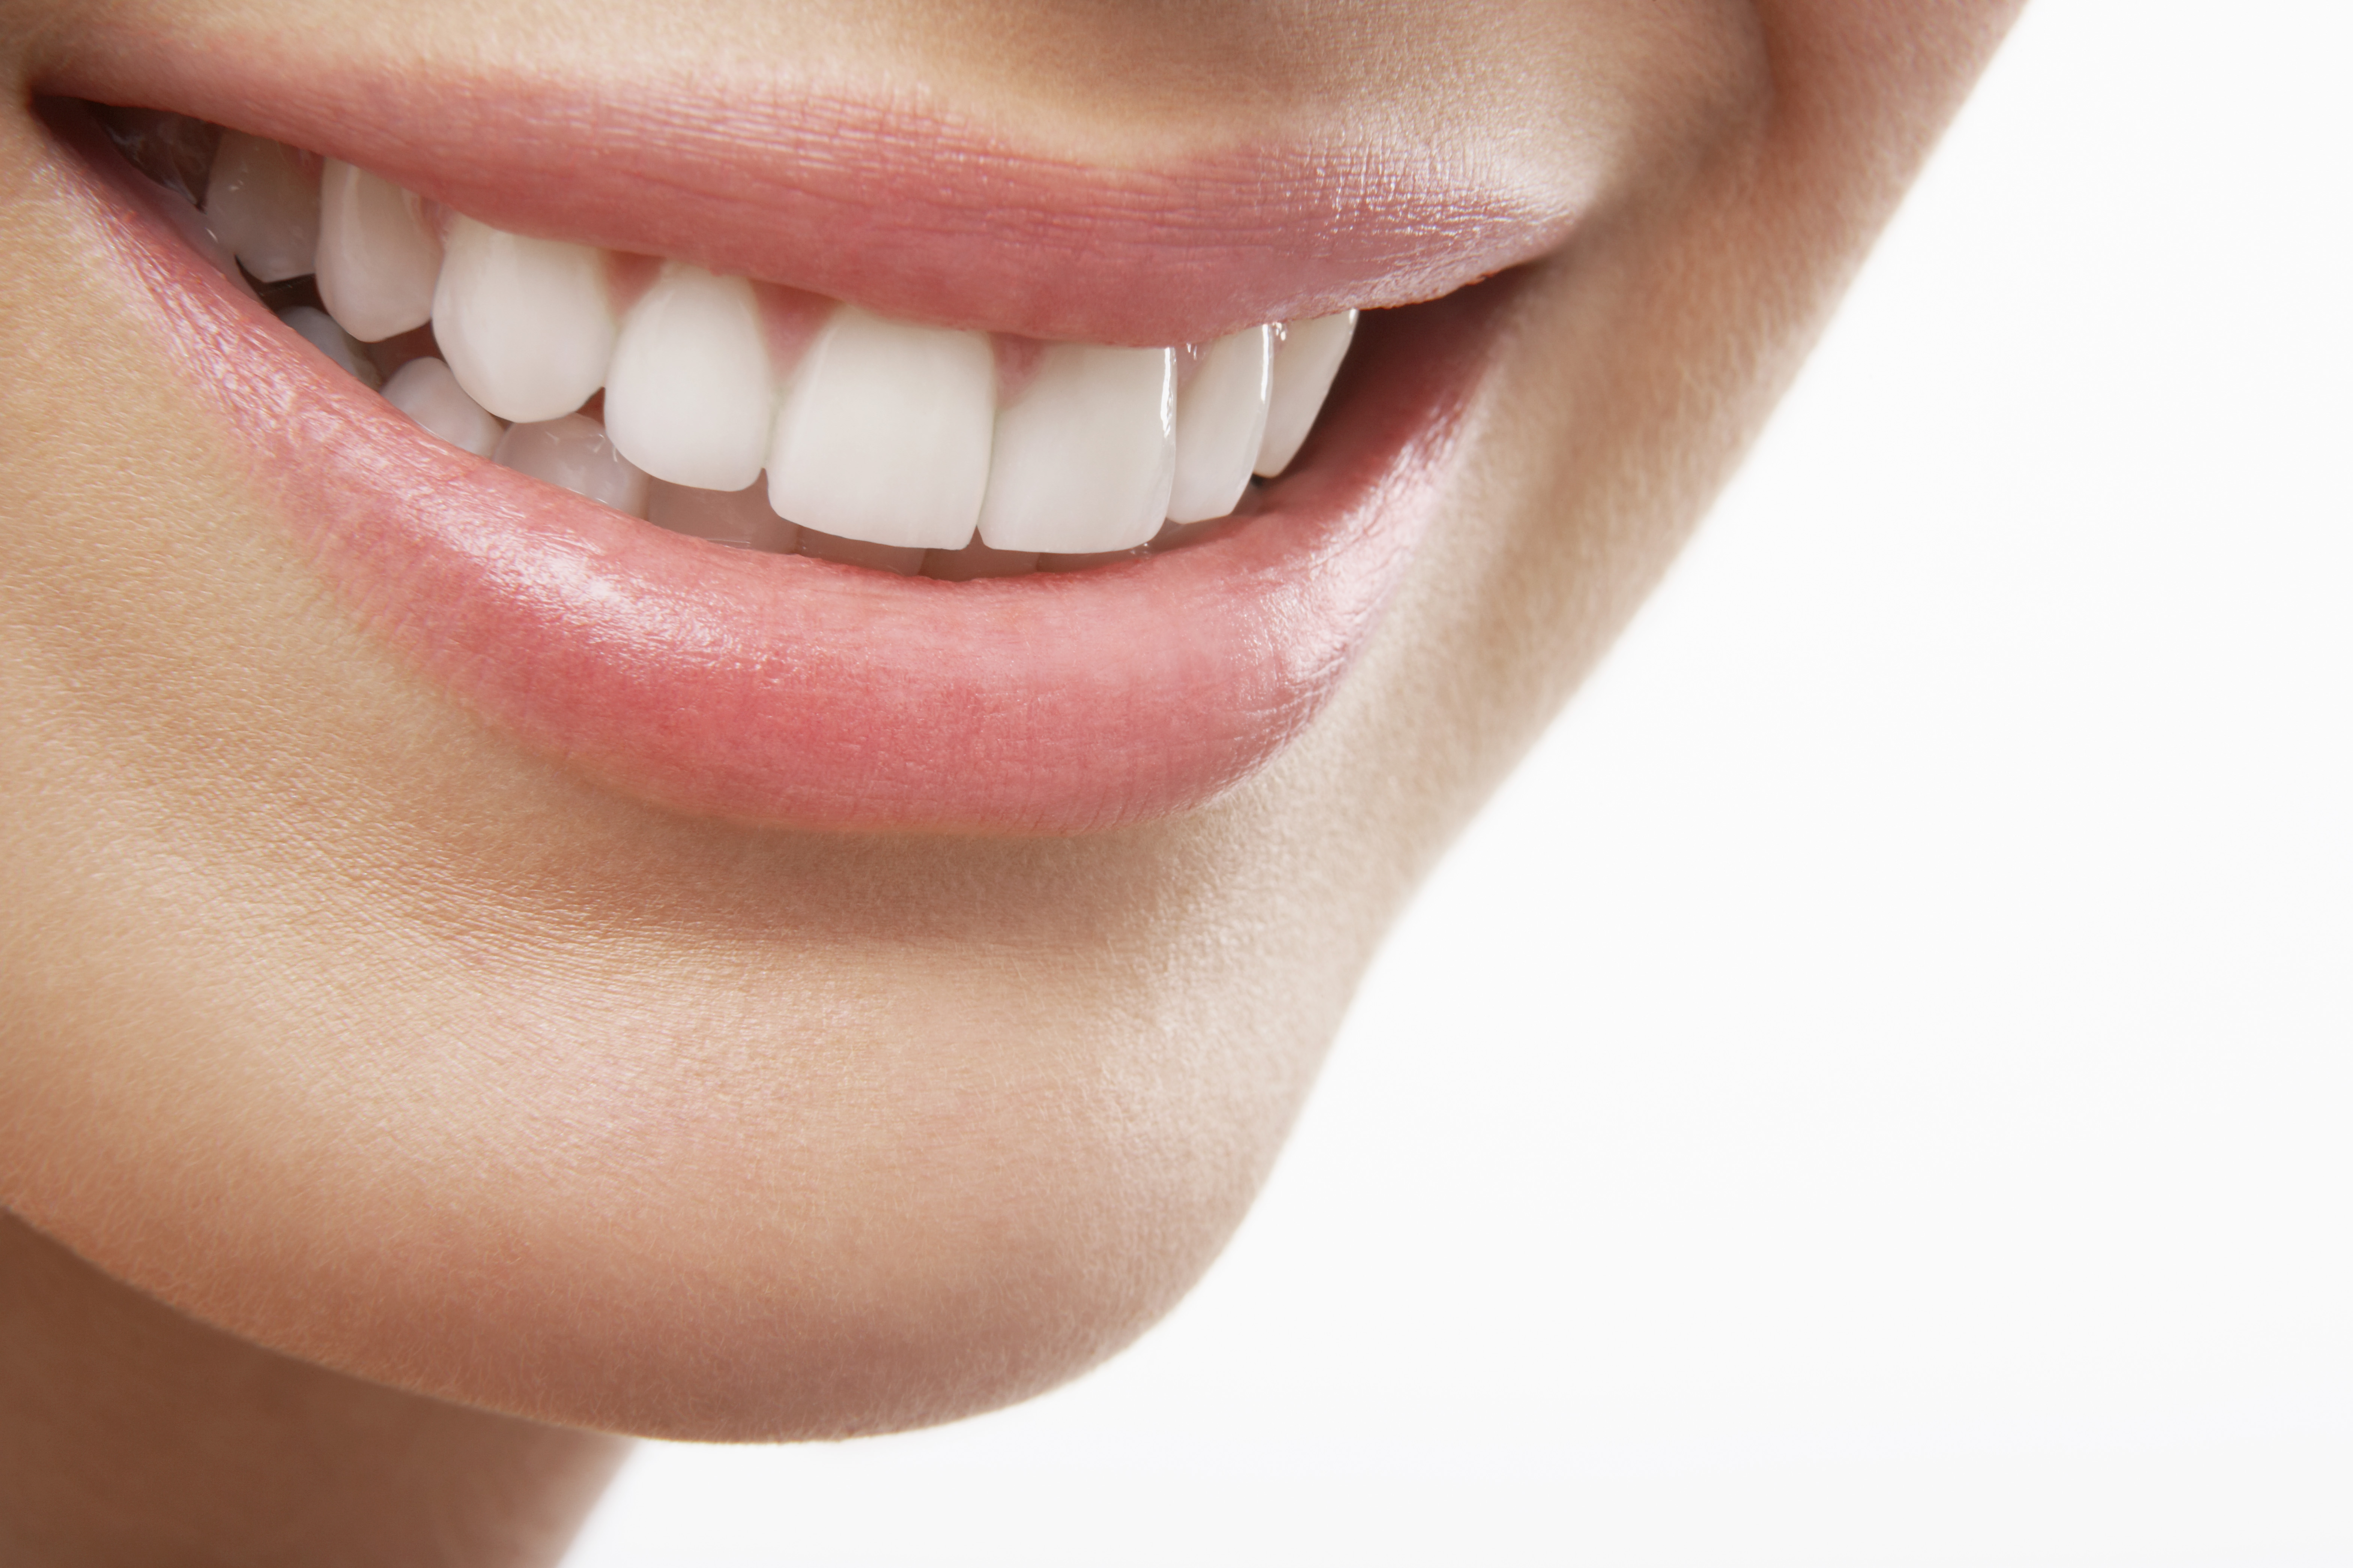 how to use peroxide to whiten teeth